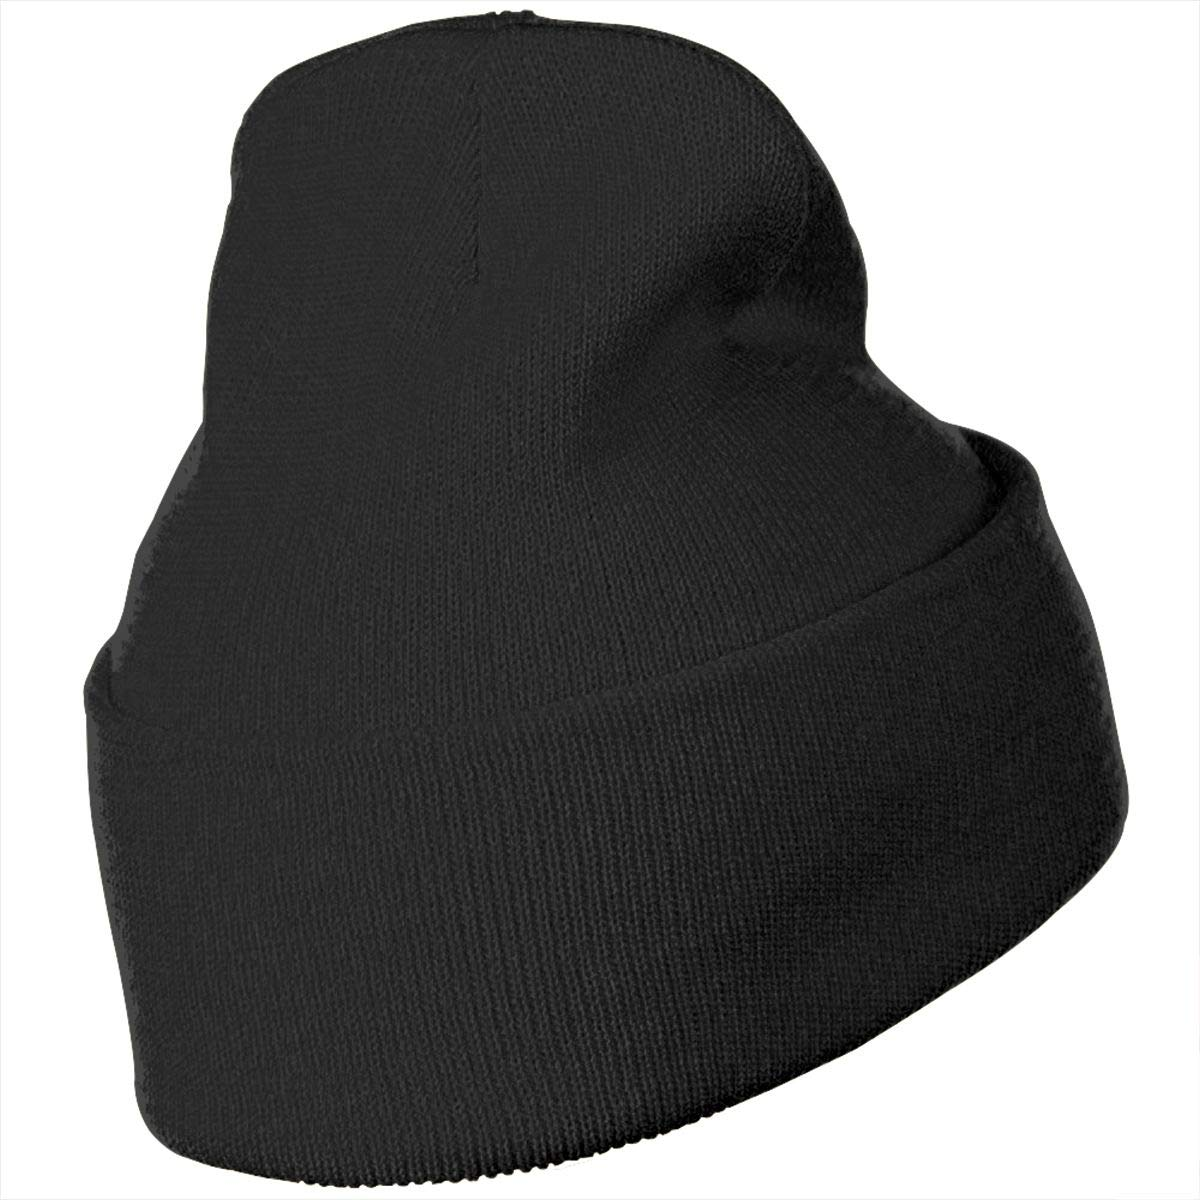 Eye Of The Angel Ghana Black Beanie Hat for Men and Women Winter Warm Hats Knit Slouchy Thick Skull Cap